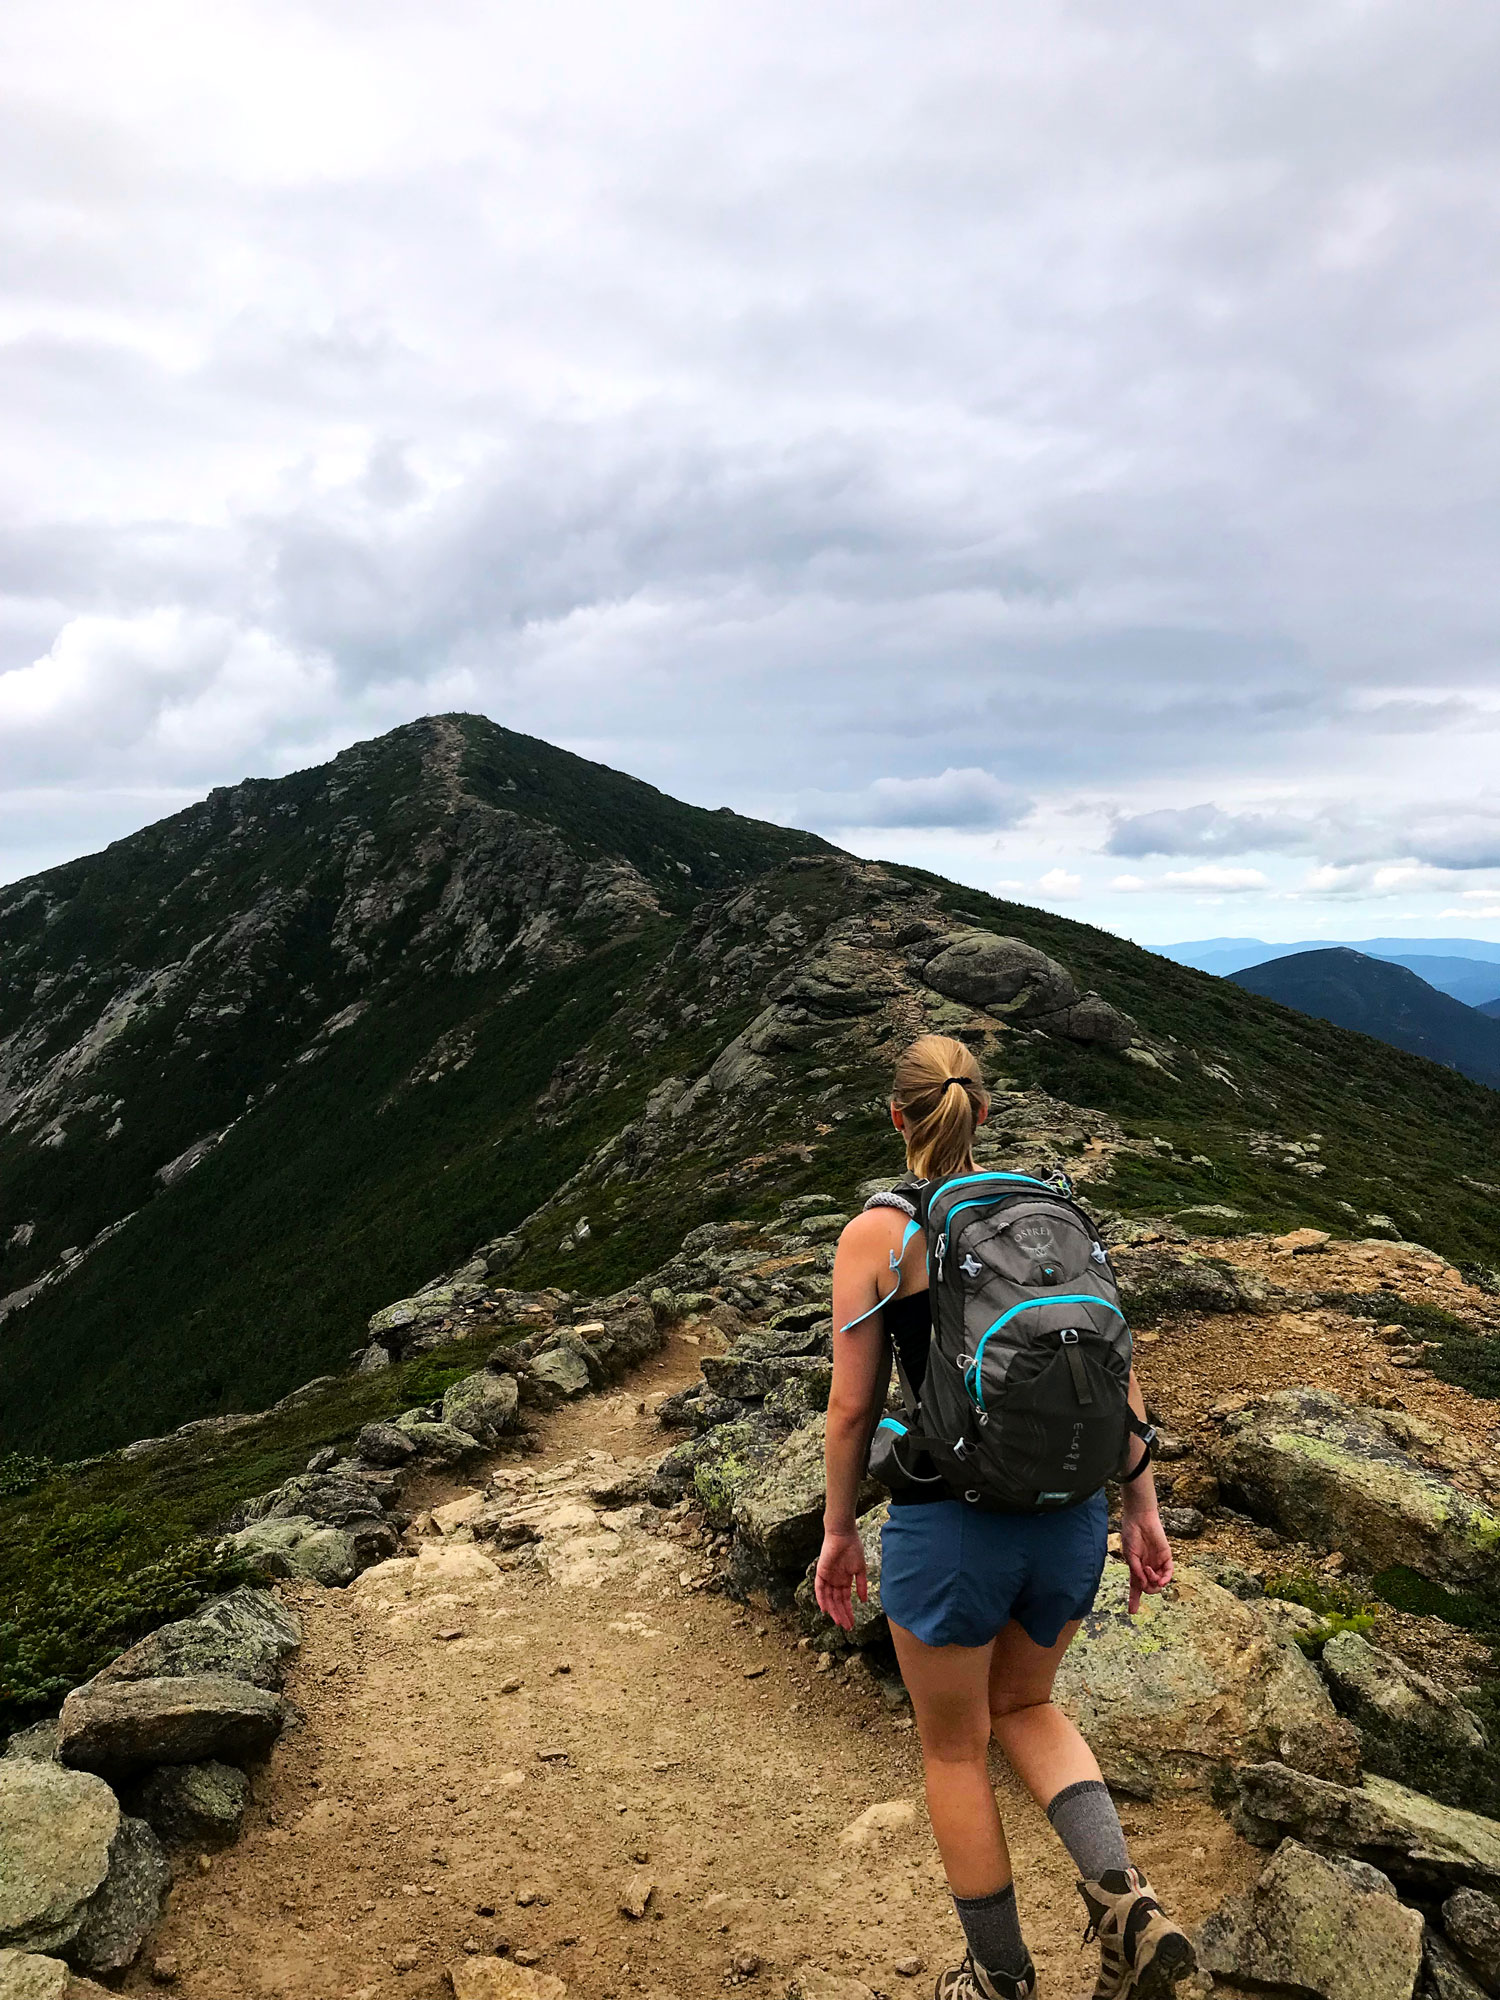 I hiked the beautiful exposed ridge of franconia ridge trail twice this summer in the white mountains of New hampshire.